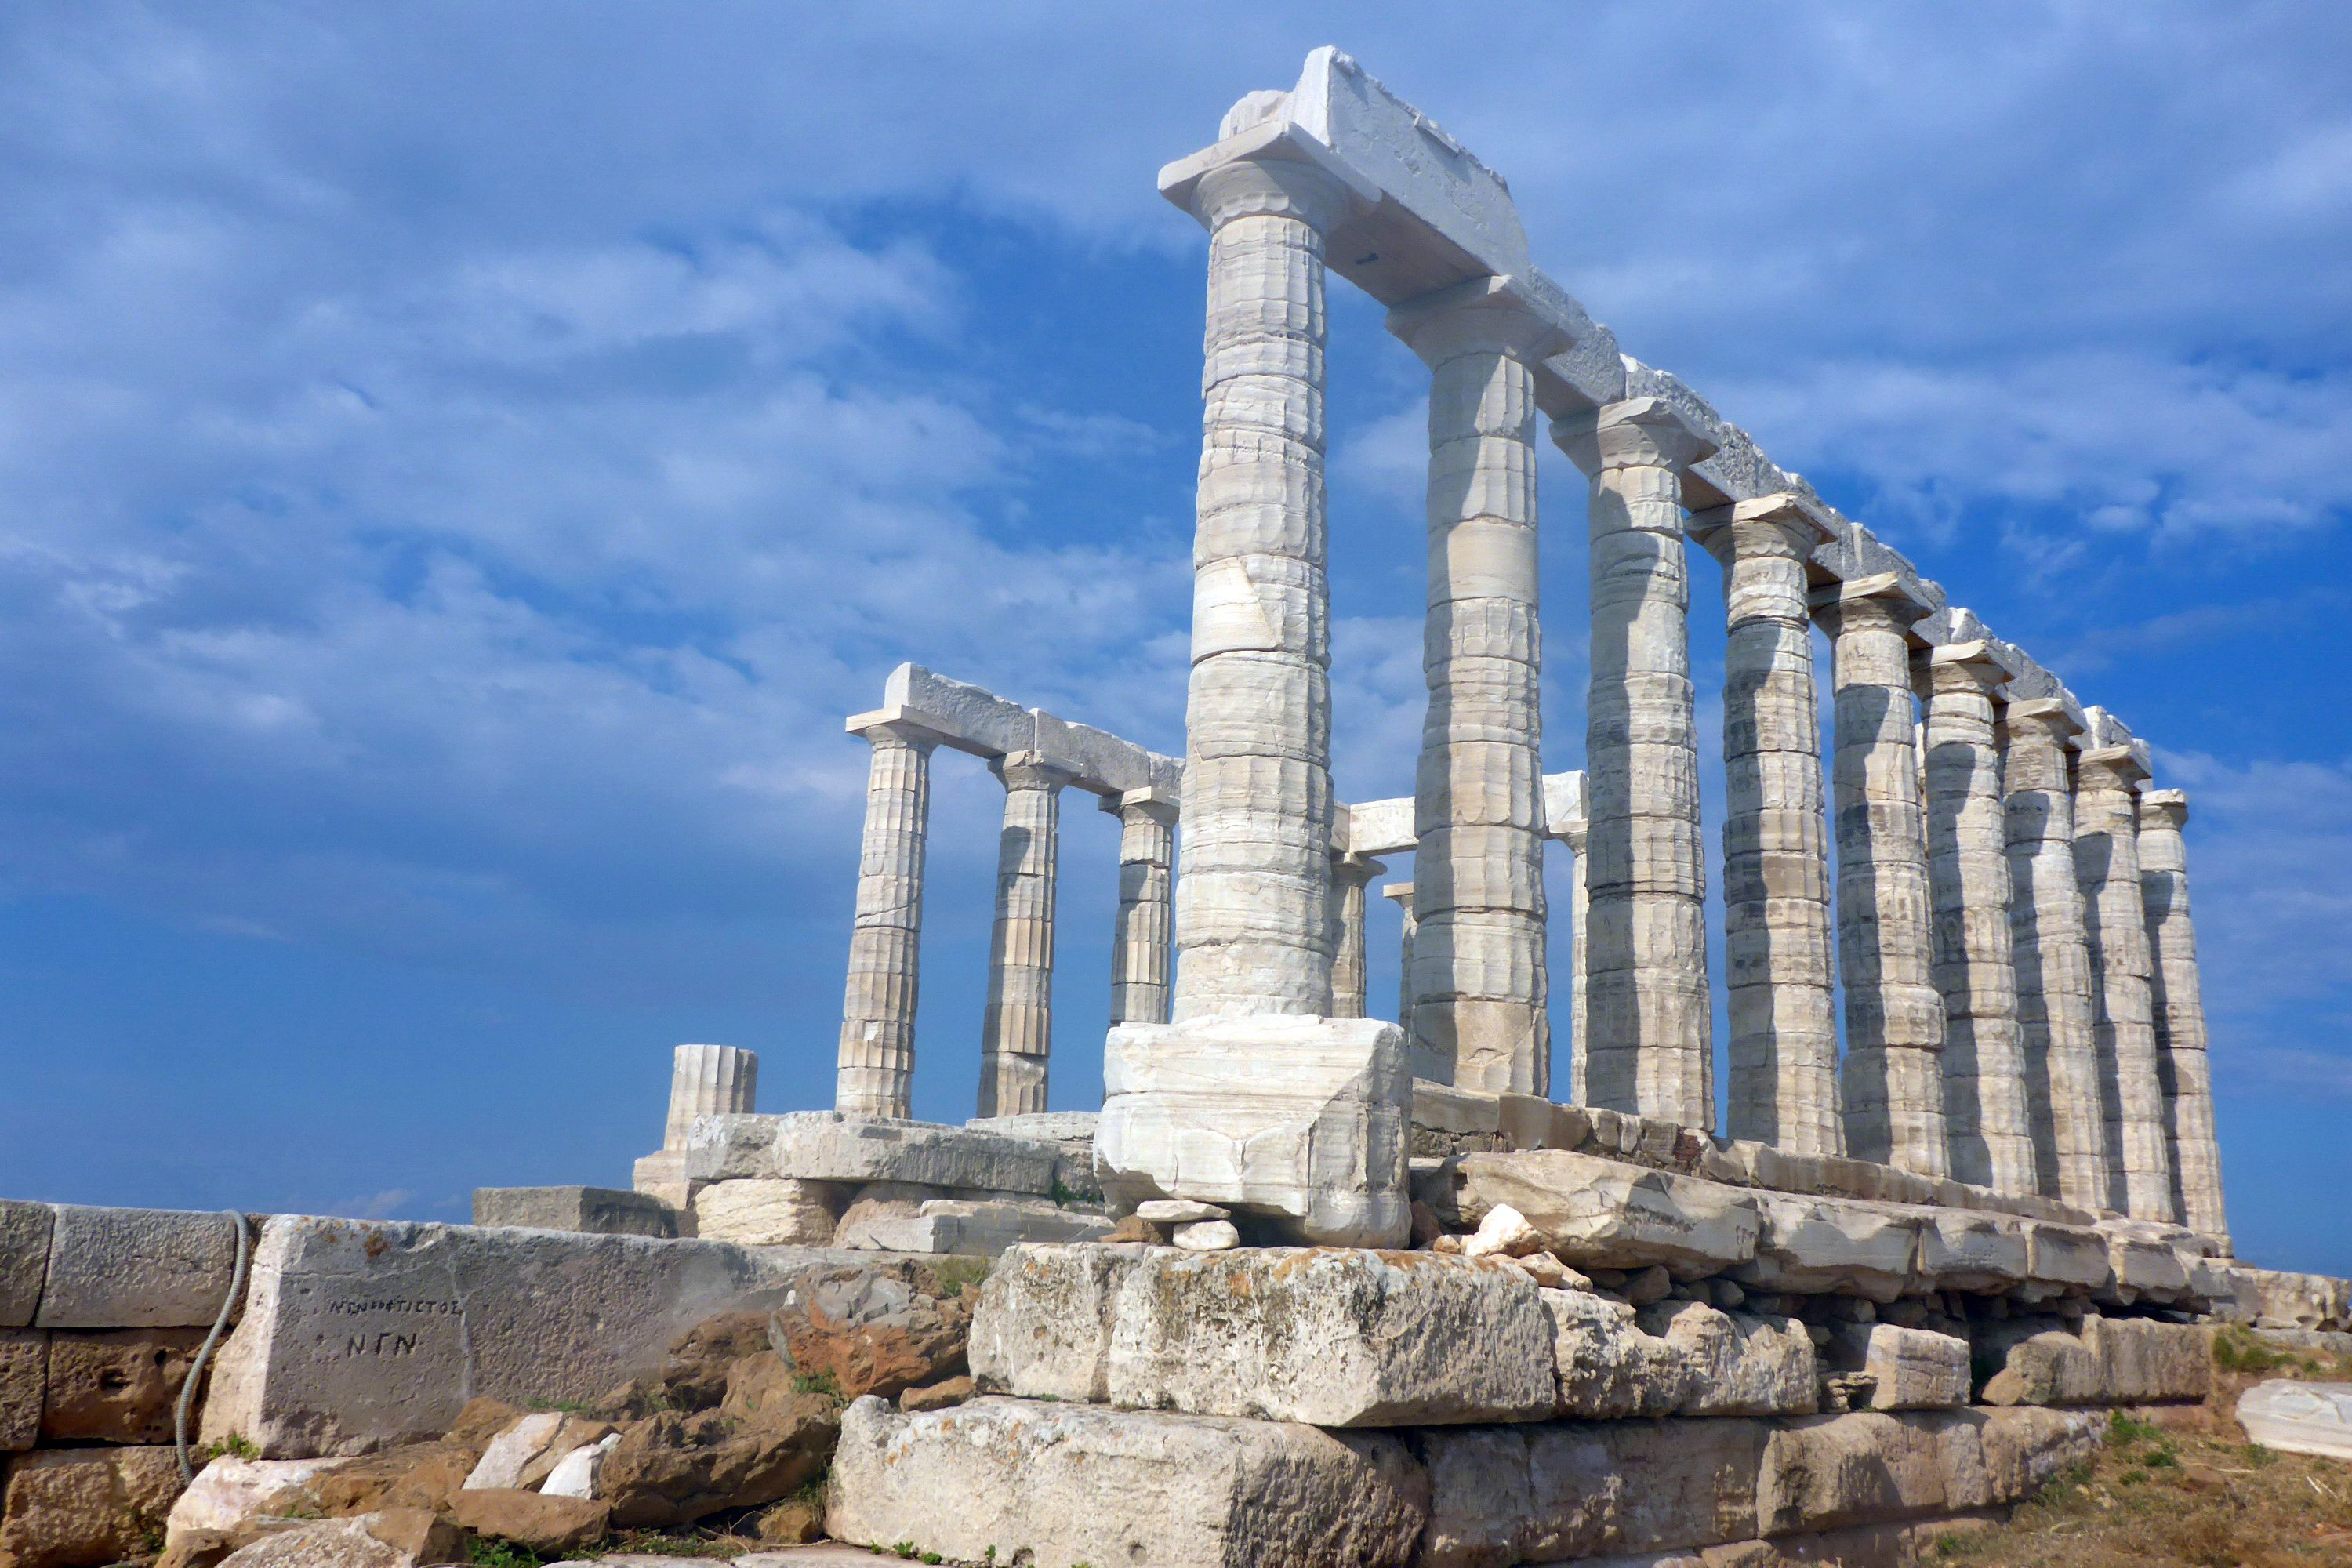 Cape Sounion Temple of Poseidon near Athens, Greece